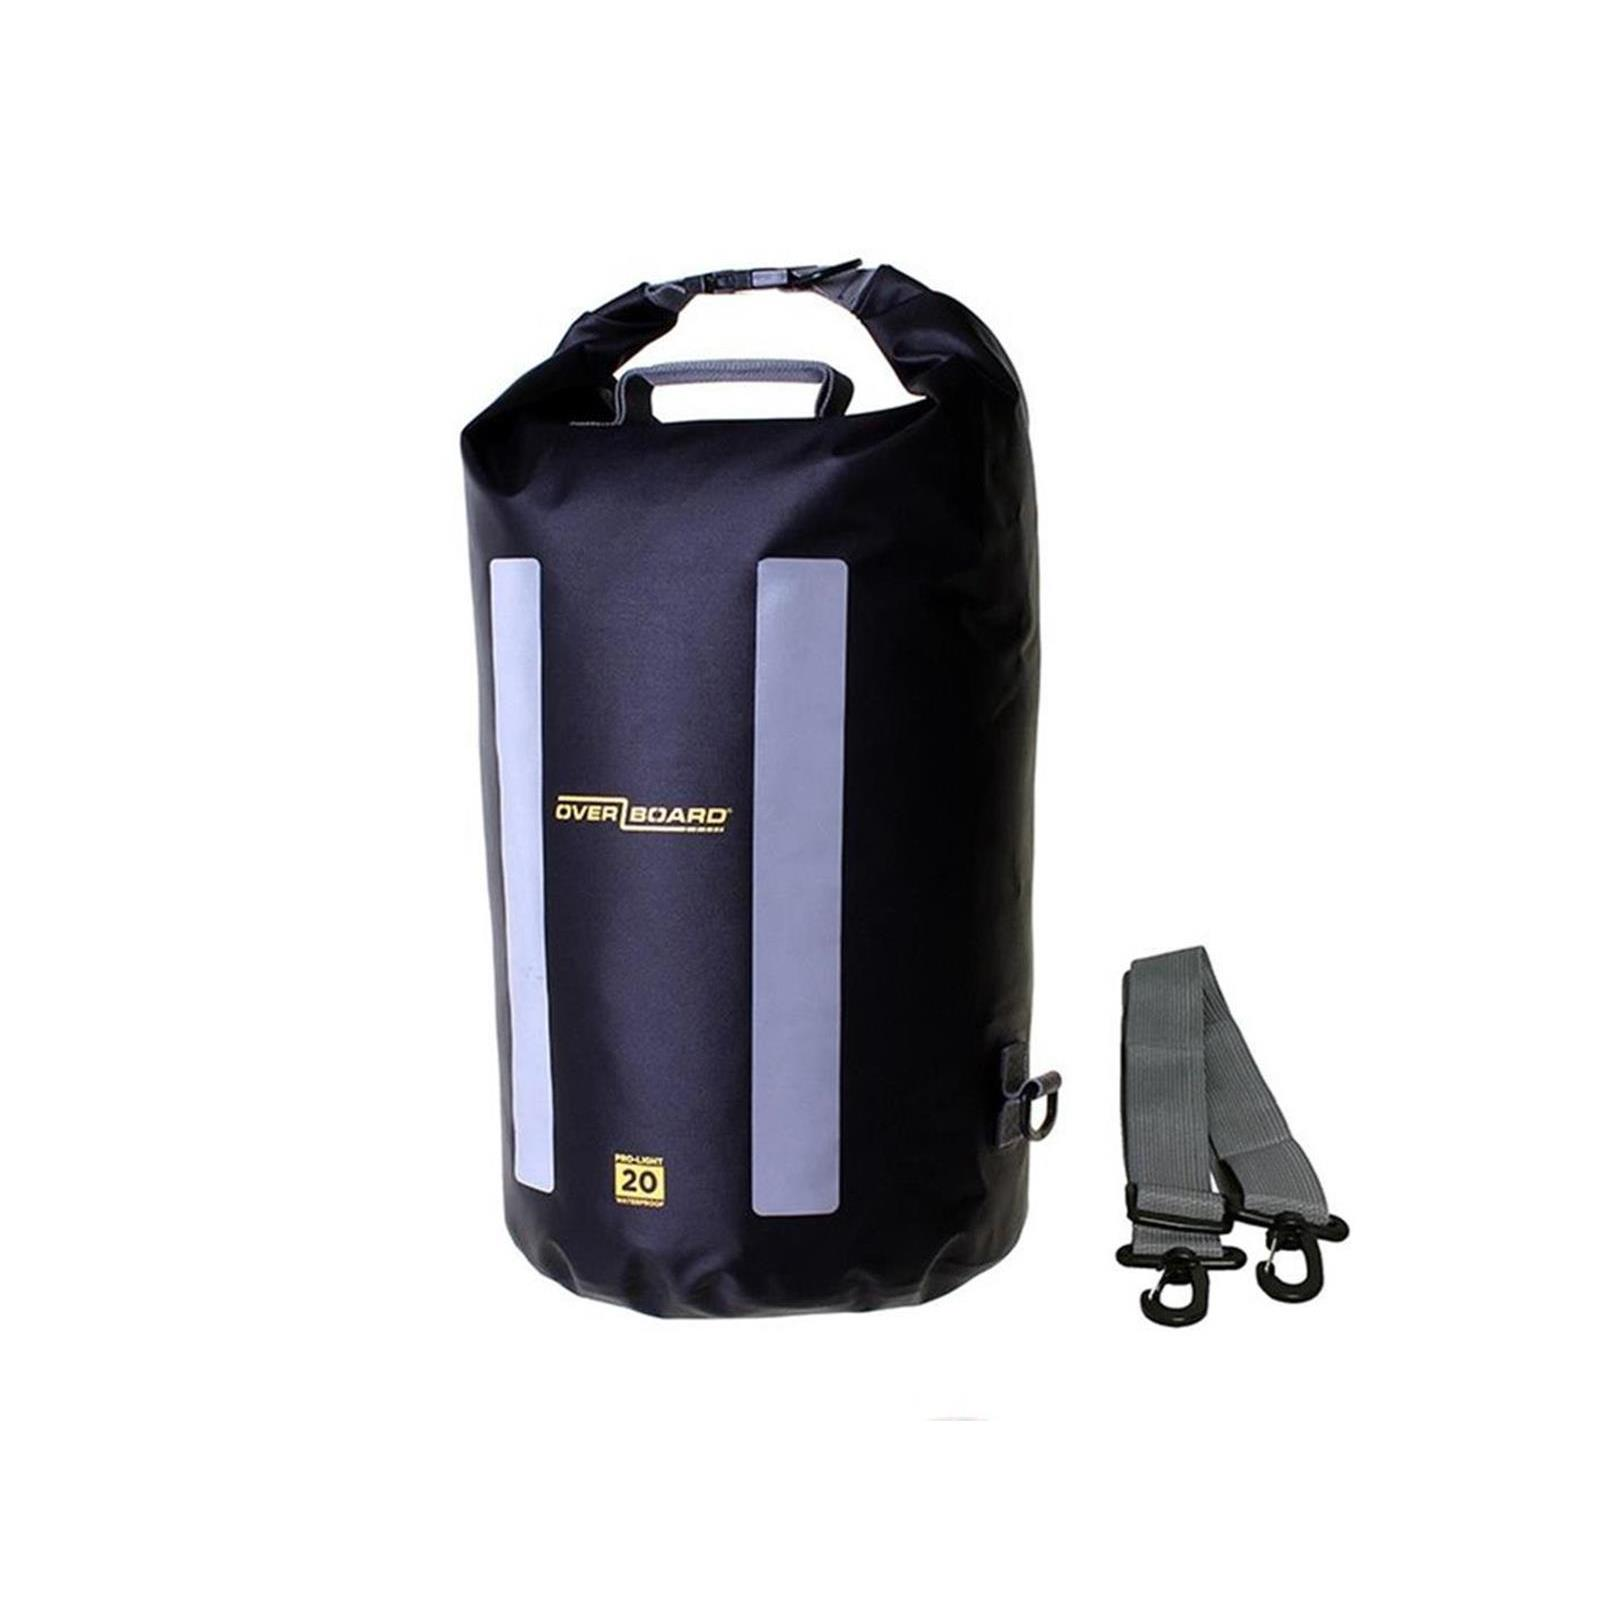 OverBoard wasserdichter Packsack LIGHT 20 L Schw OB1162BLK Pro-Light